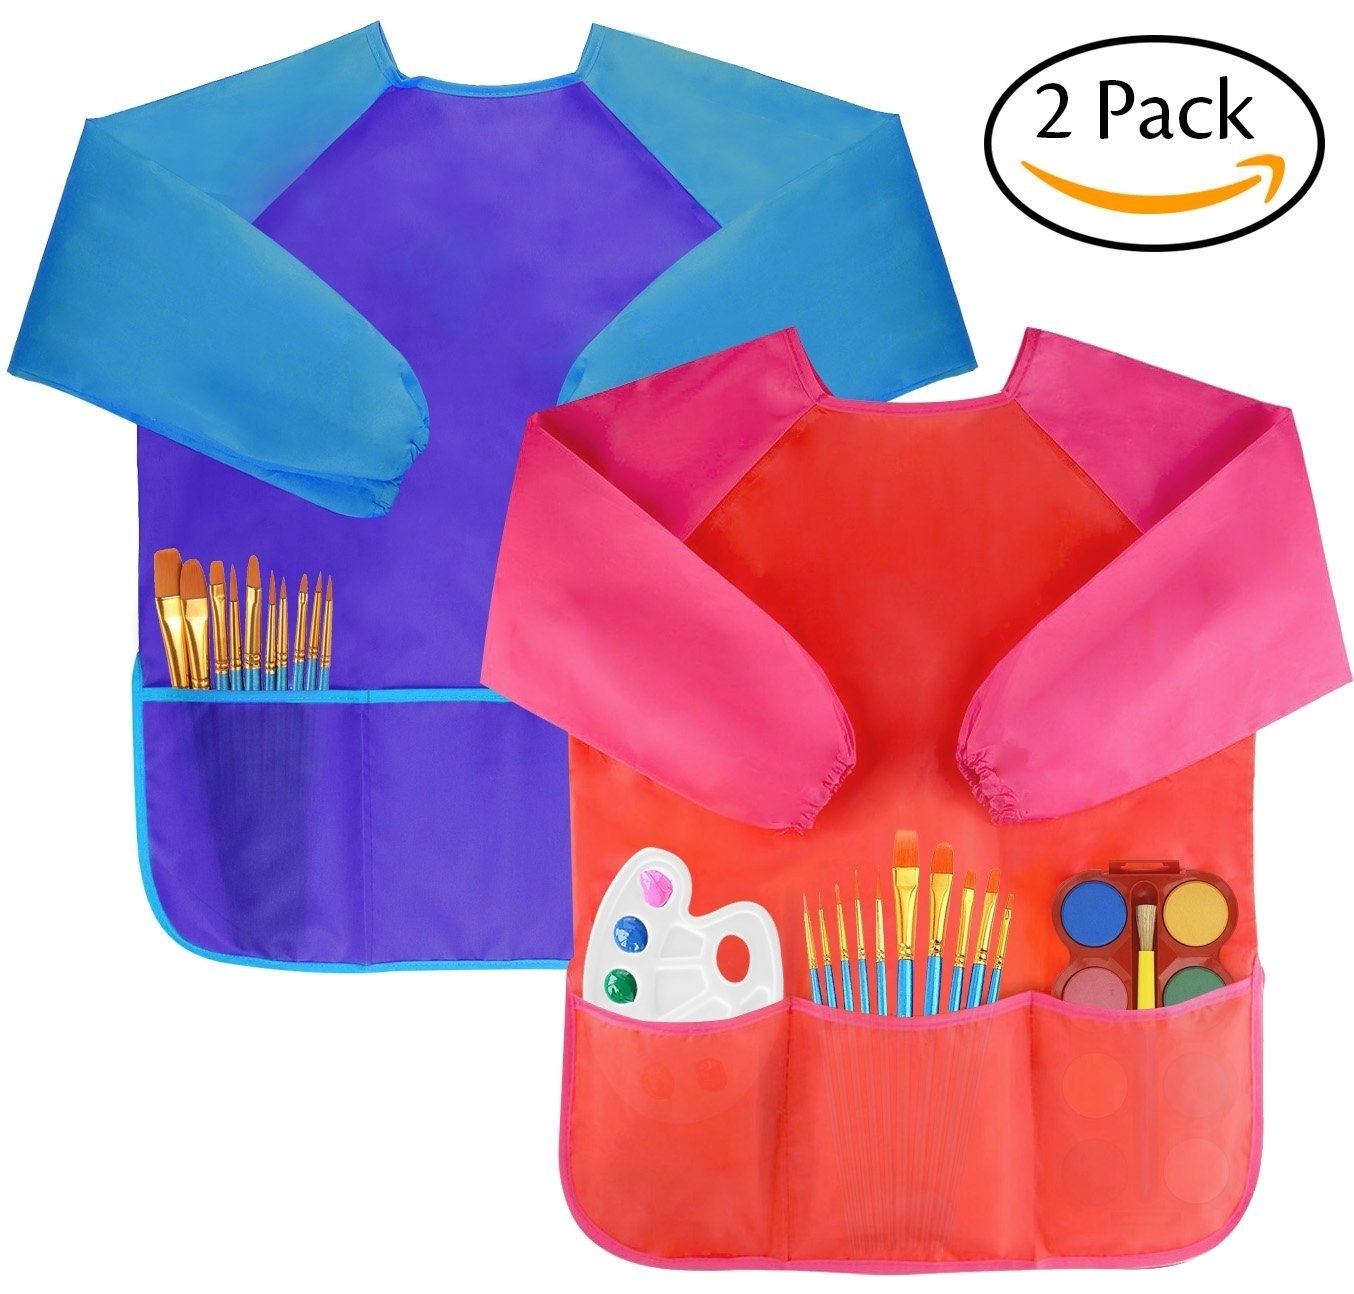 Pack of 2 Kids Art Smocks, Children Waterproof Artist Painting Aprons Long Sleeve with 3 Pockets for Age 2-6 Years 5afa3c9115910213d52ffde4